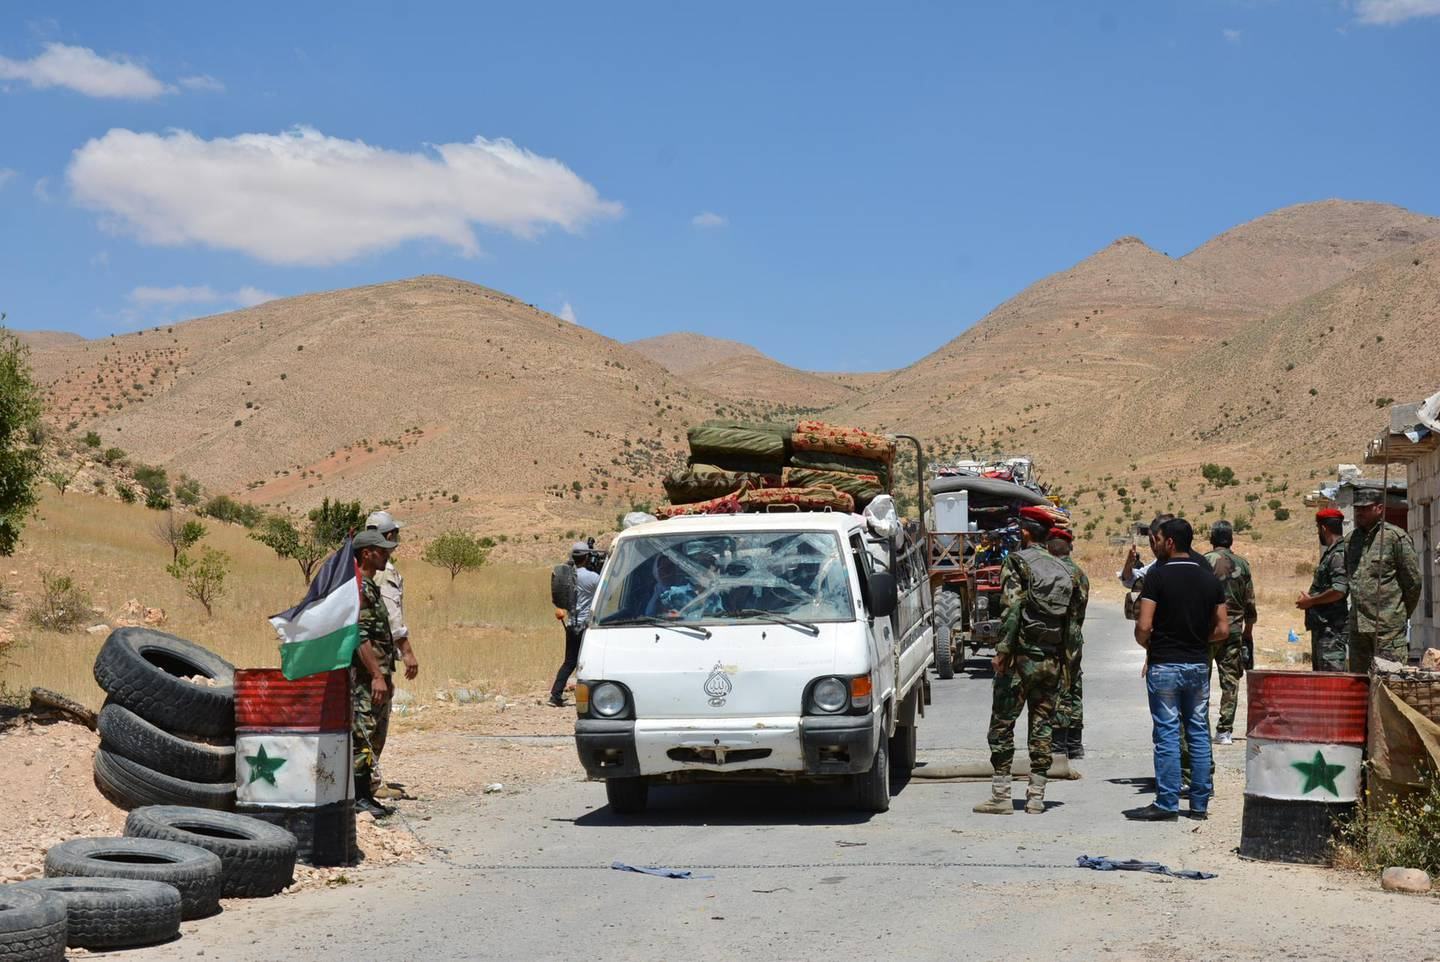 epa06906590 A handout photo made available by the Syrian Arab News Agency (SANA) shows hundreds of Syrian refugees returning from the Lebanese territories through al-Zamrani corridor to their homes in al-Qalamoun area in Damascus countryside, Syria, 23 July 2018. According to media reports, Lebanon hosts 1,011,366 Syrian refugees registered with UNHCR, Including 80 thousand refugees living in seven camps in the city of Arsal. Some 900 displaced Syrians would return. this is the third batch of displaced Syrians, who have recently returned to their homeland.  EPA/SANA HANDOUT  HANDOUT EDITORIAL USE ONLY/NO SALES